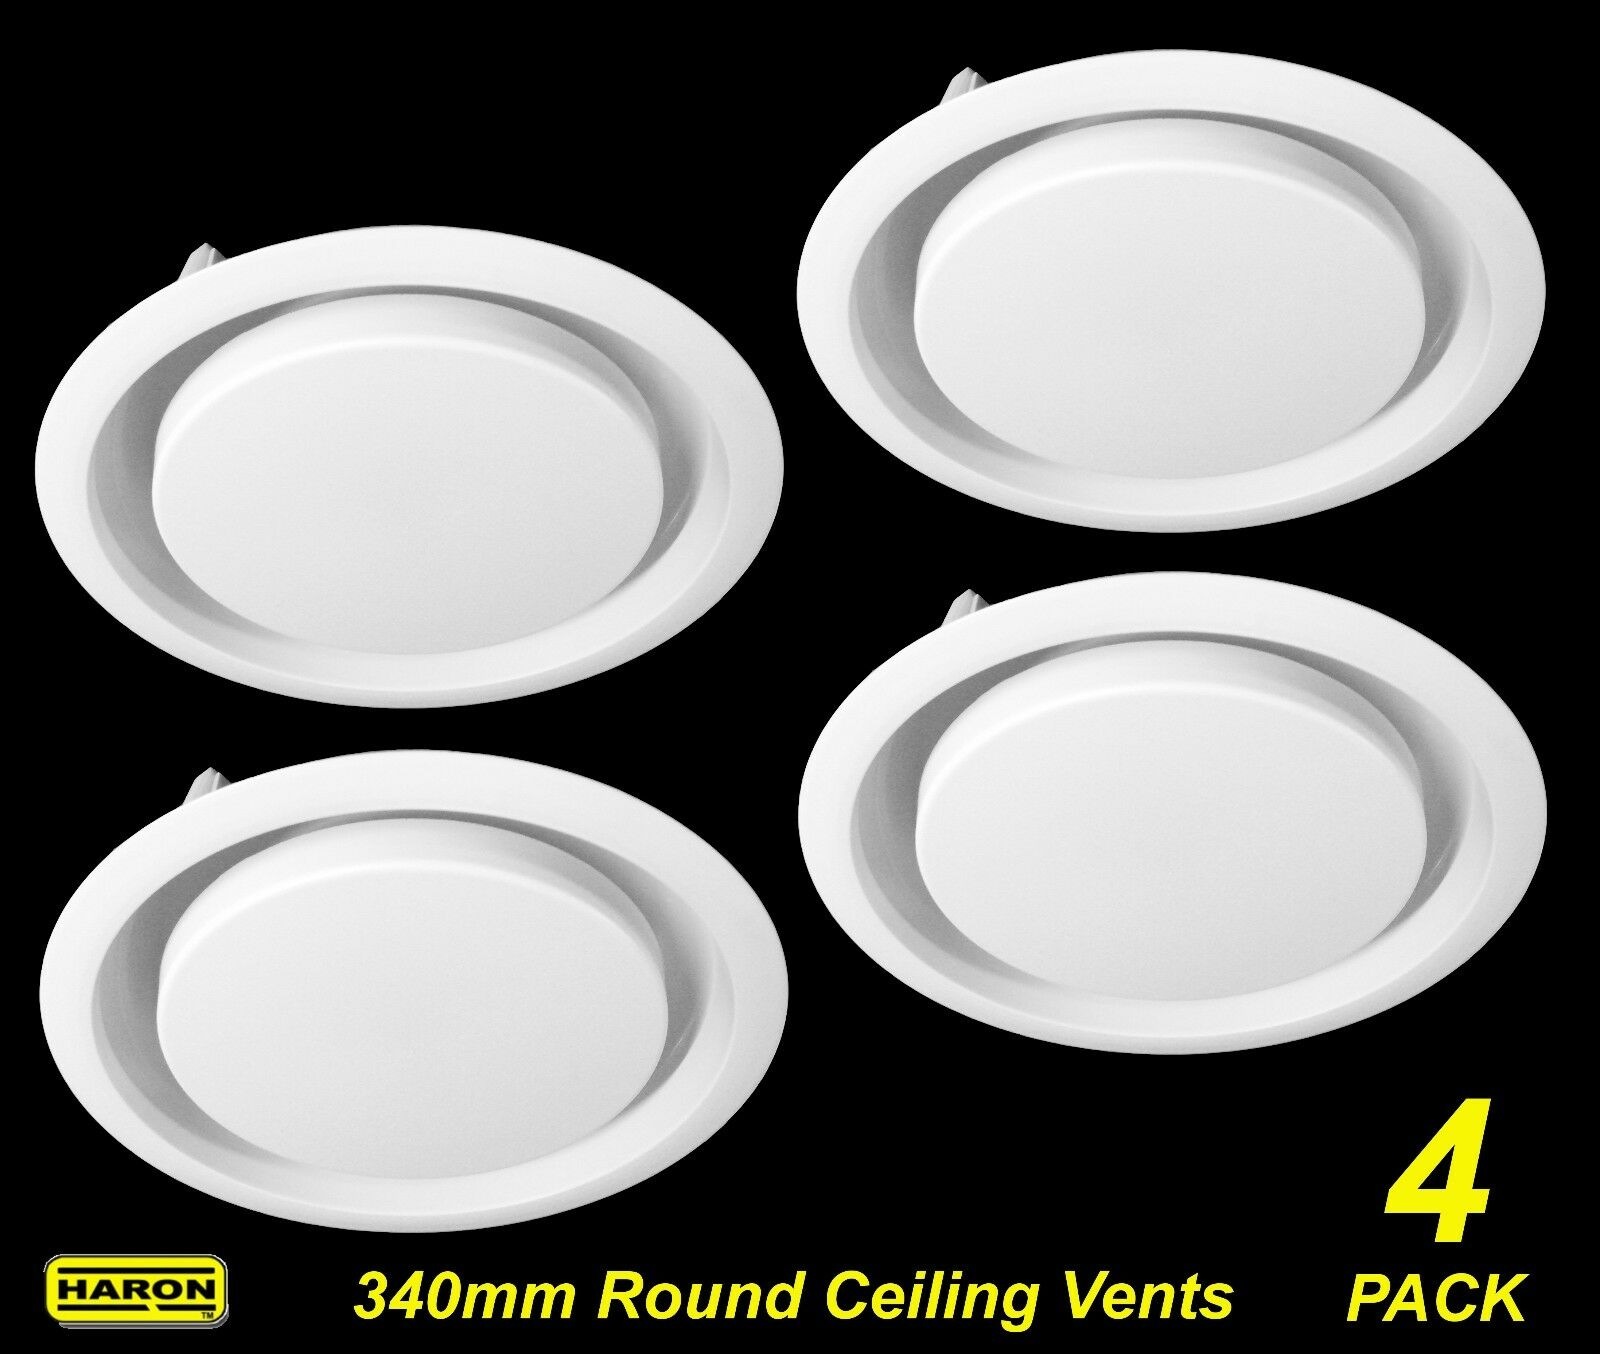 4 x Ceiling Mount Round Air Vent   Grille with Flyscreen Snap-In 340mm diameter